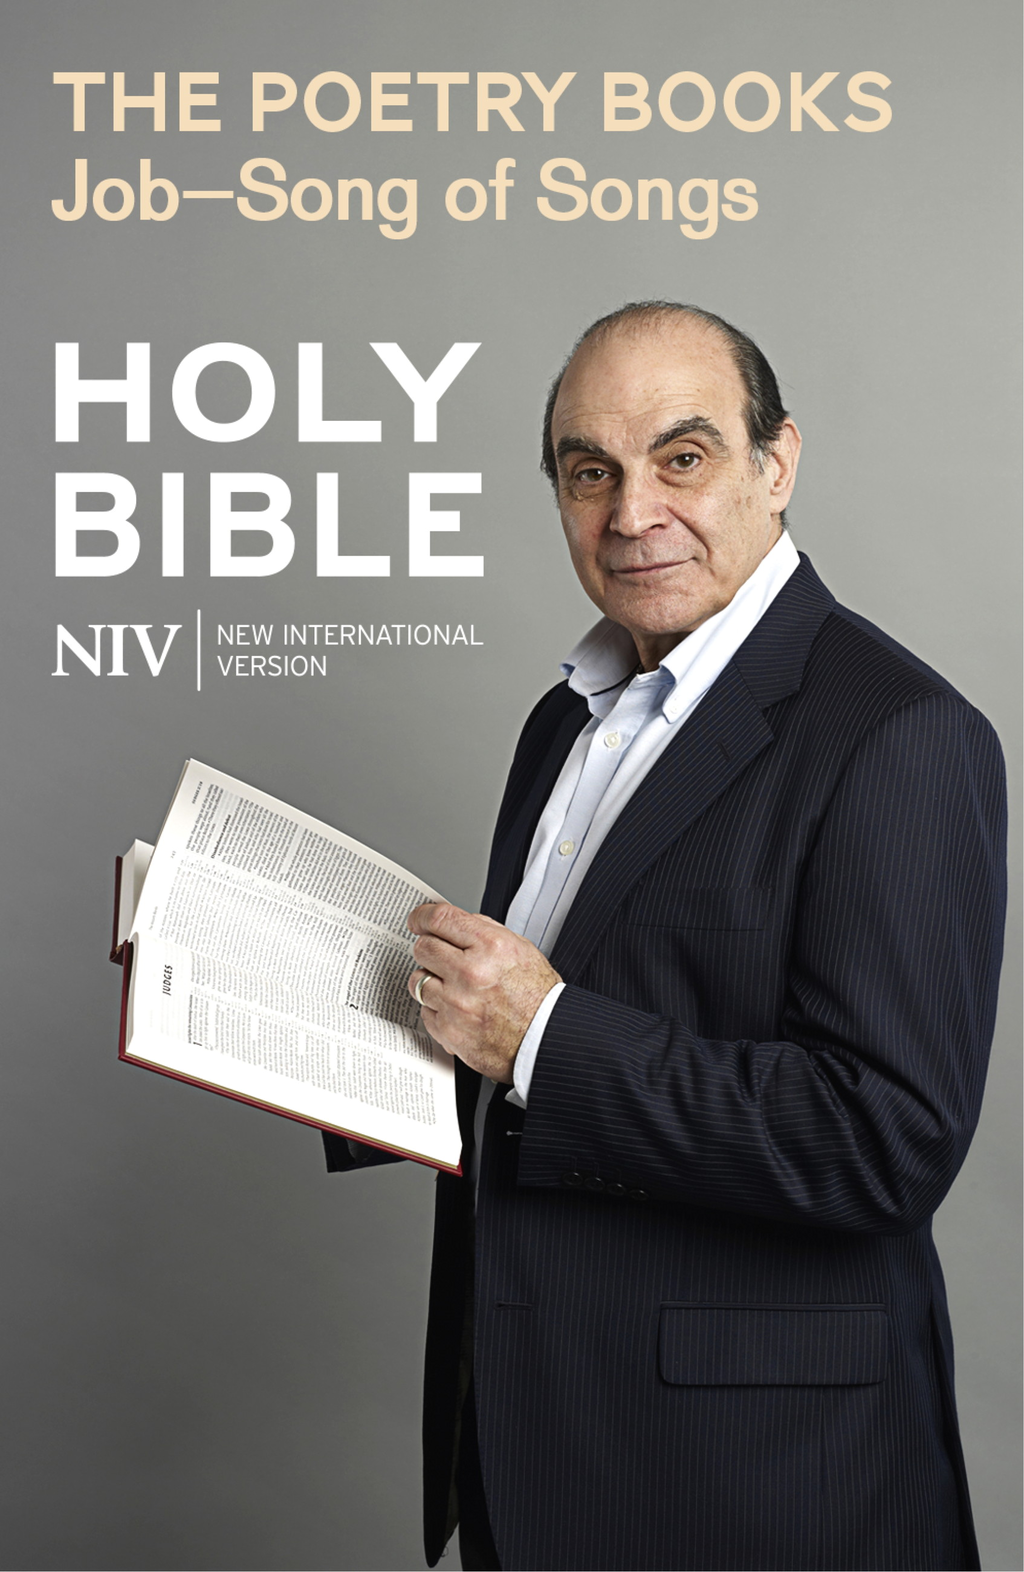 NIV Bible: the Poetry Books Job?Song of Songs